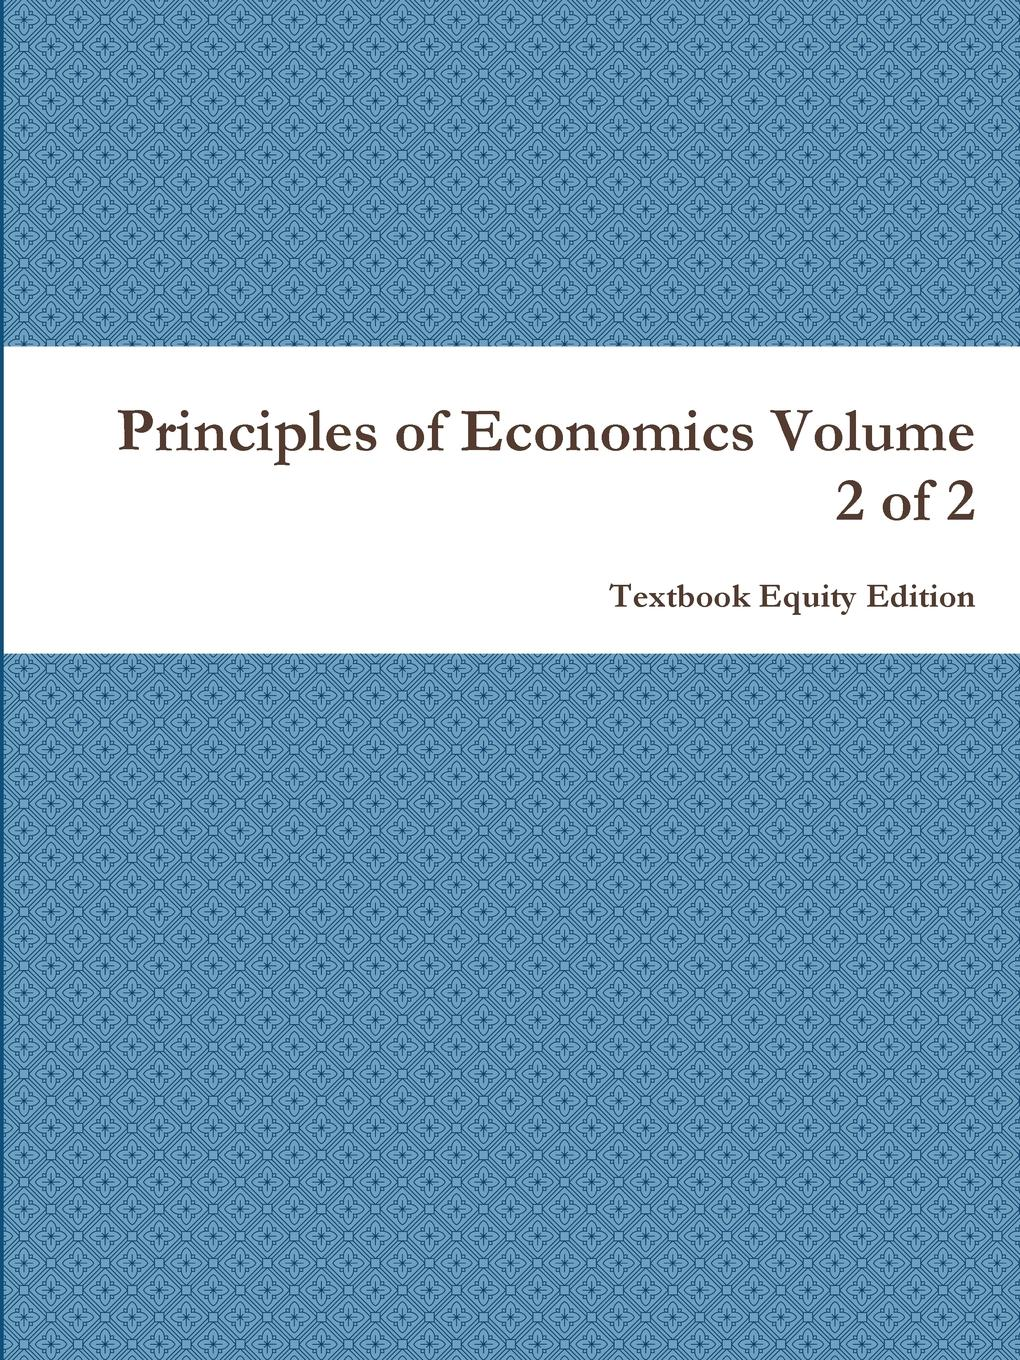 Principles of Economics Volume 2 of 2 This is Volume 2 of 2, covering Chapters 24 - 34 and the appendices...